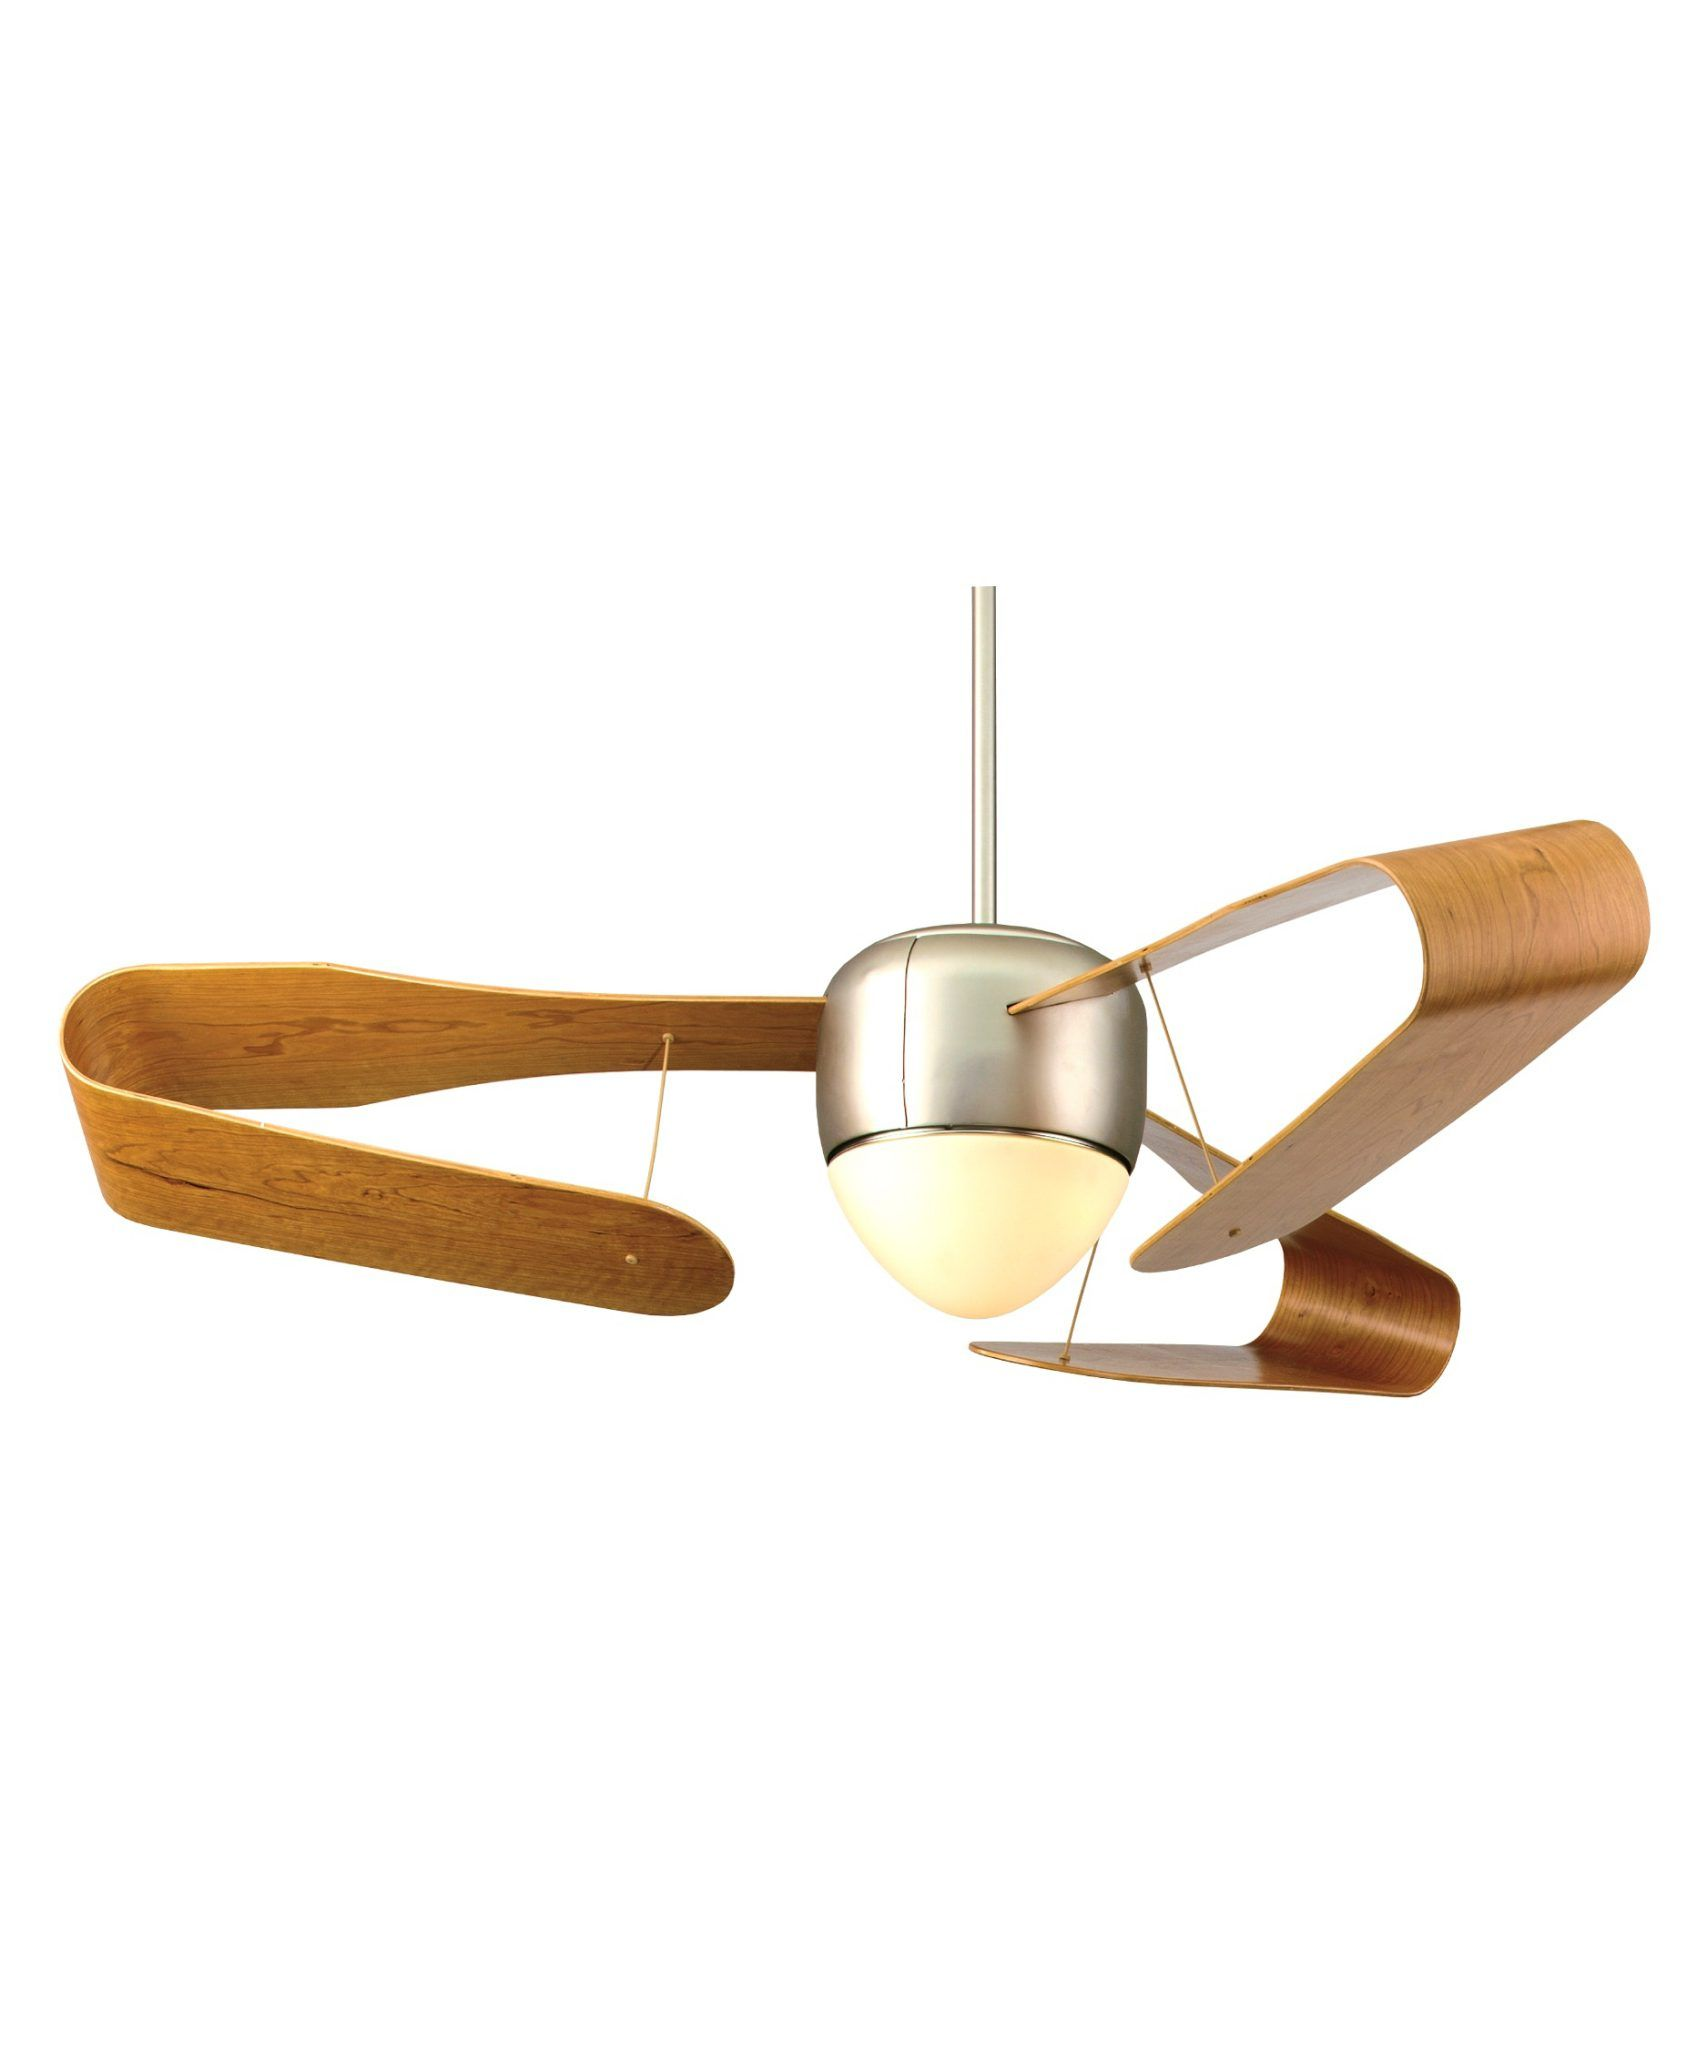 100 Most Unusual Ceiling Fans 2018